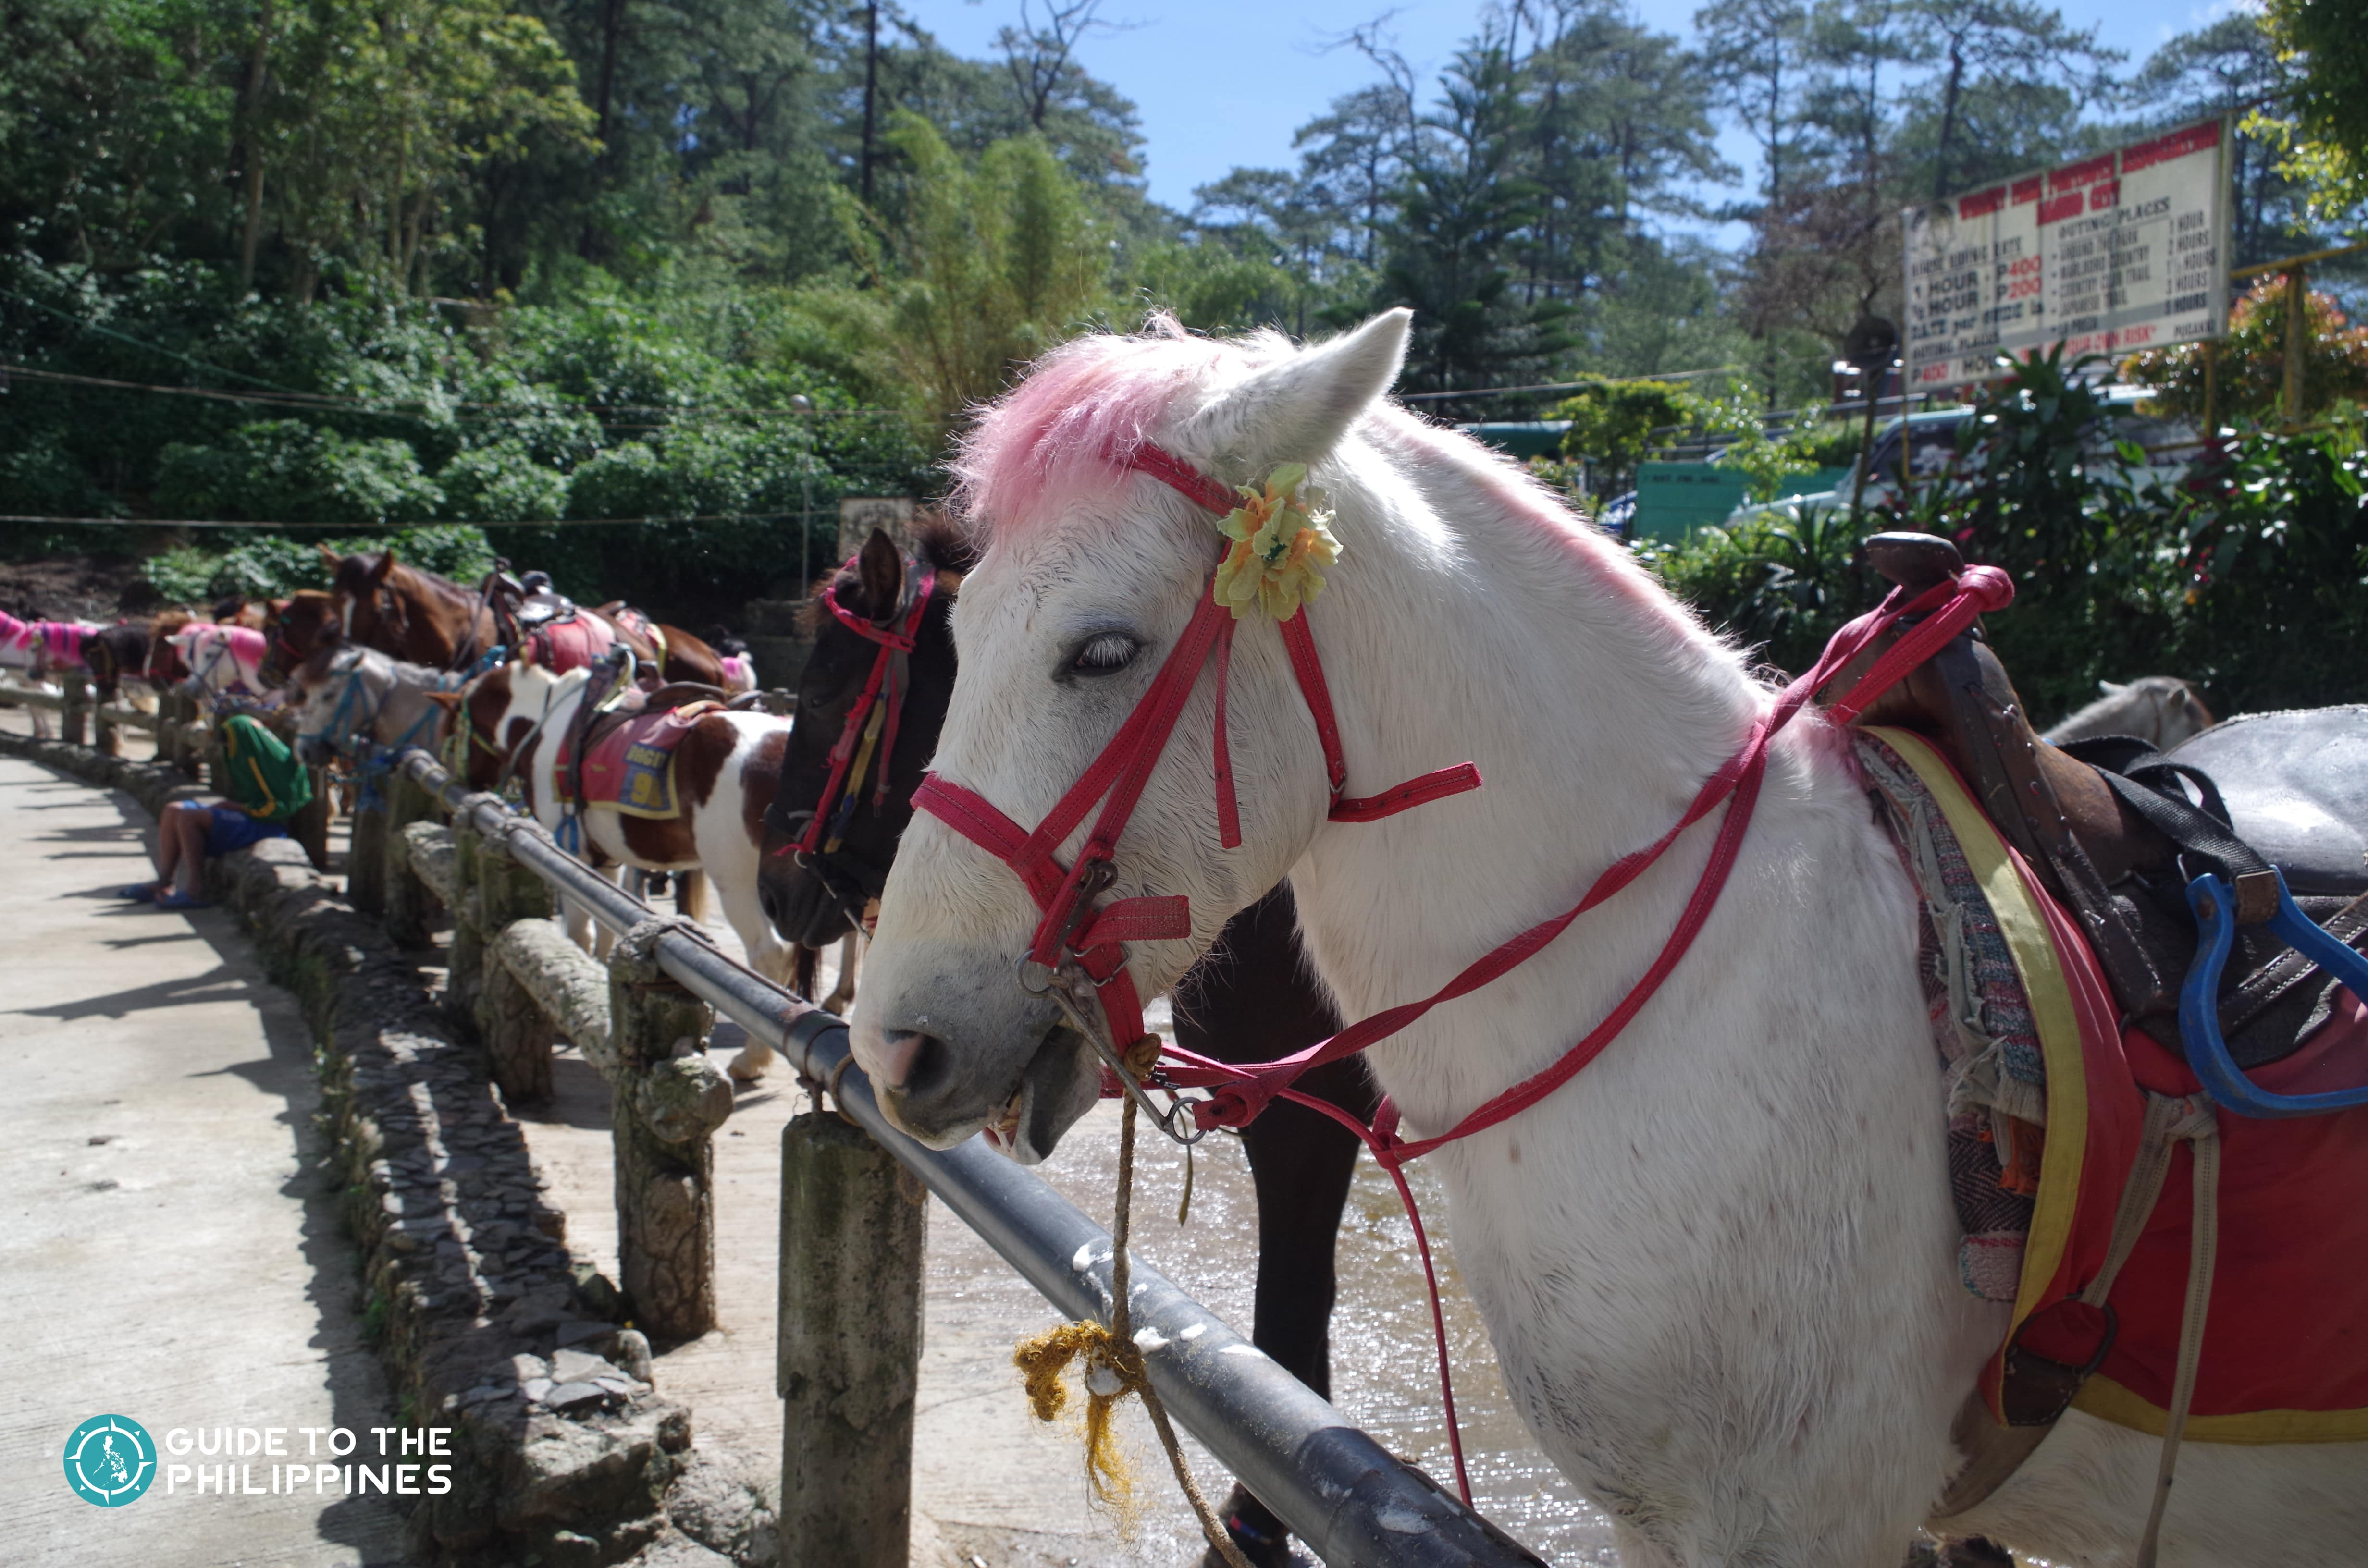 Horses in Wright Park, Baguio City